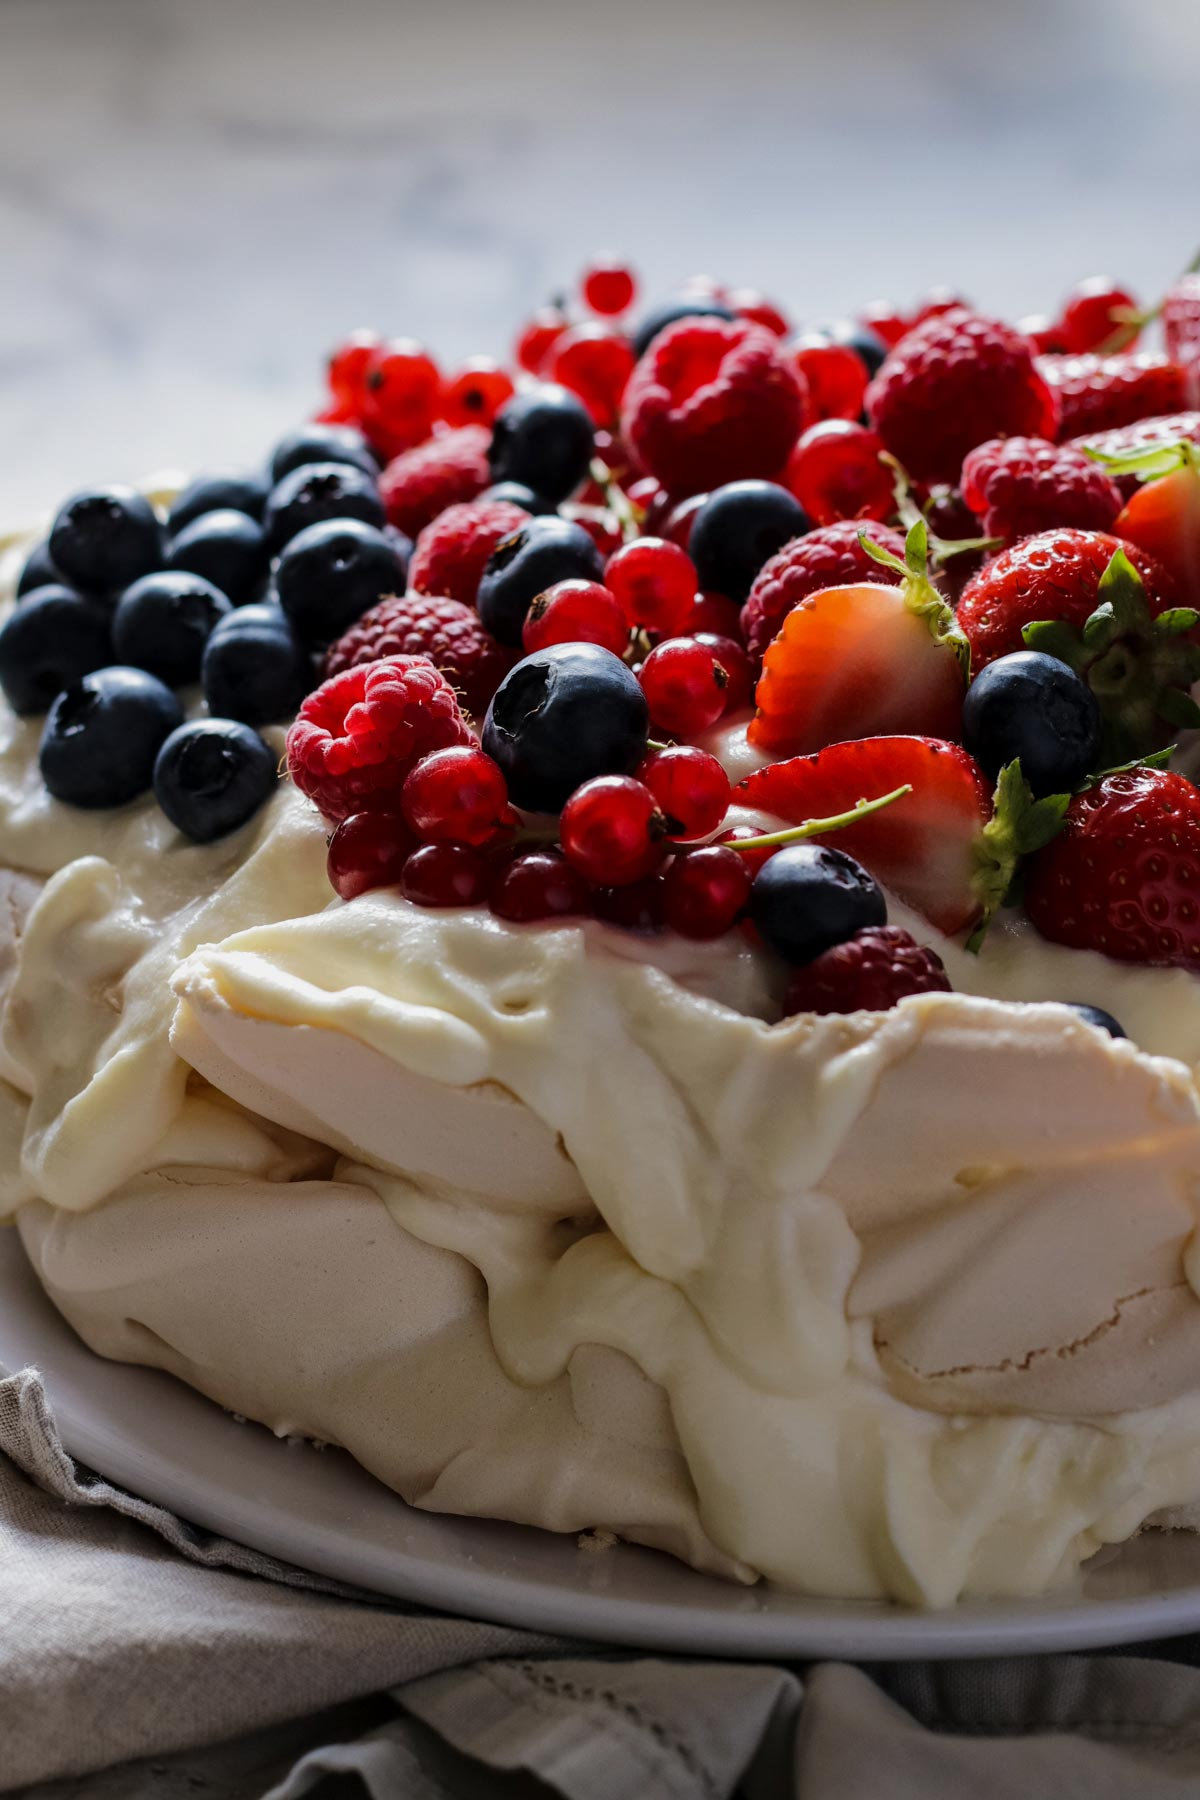 Pavlova with Berries Shot with Canon 100mm Lens